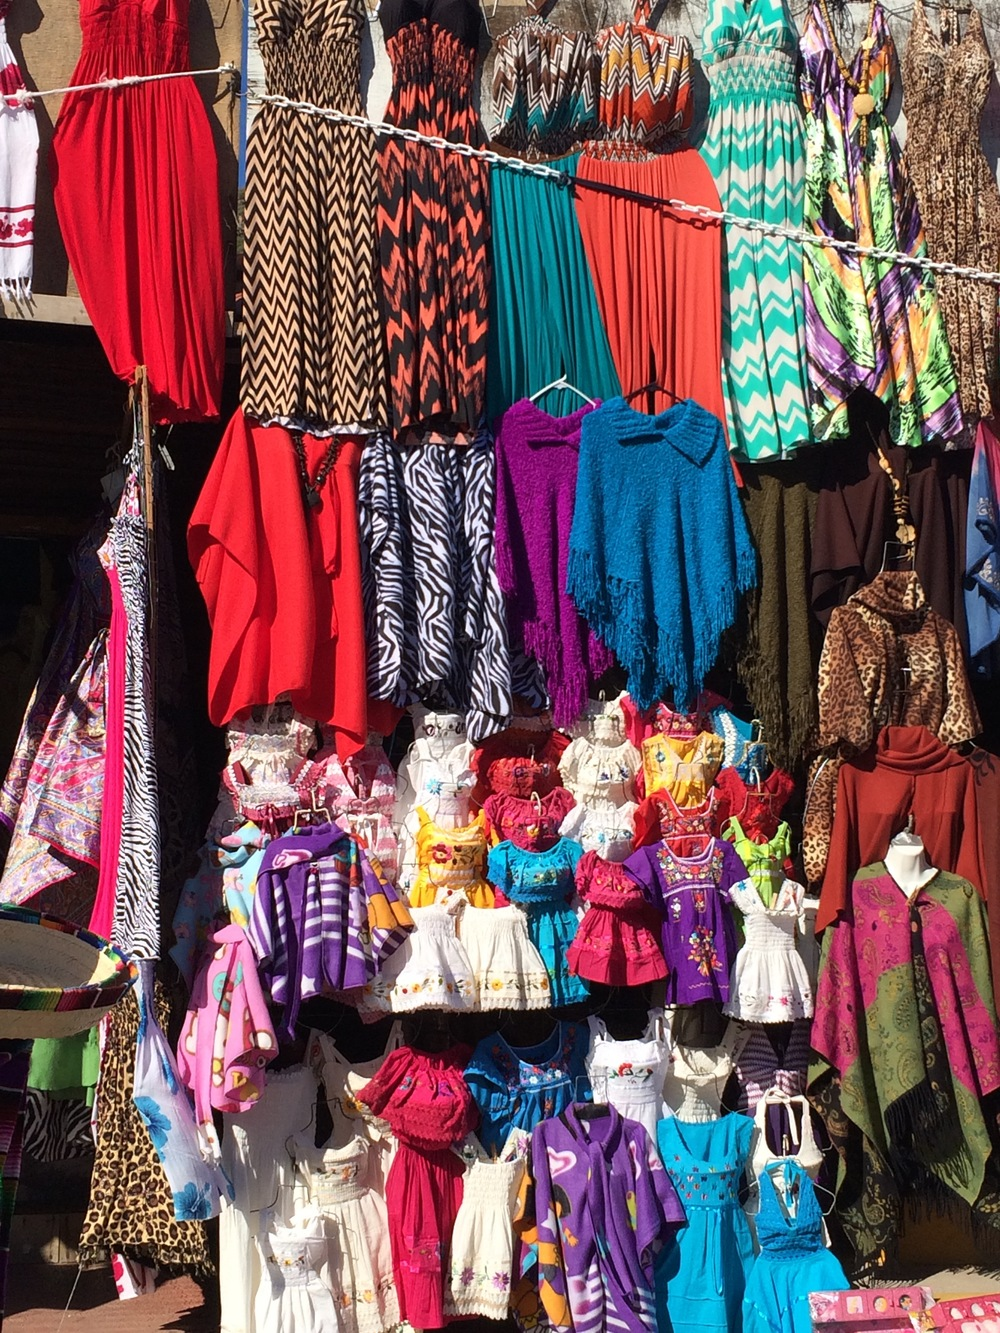 Clothing stores in Mexico